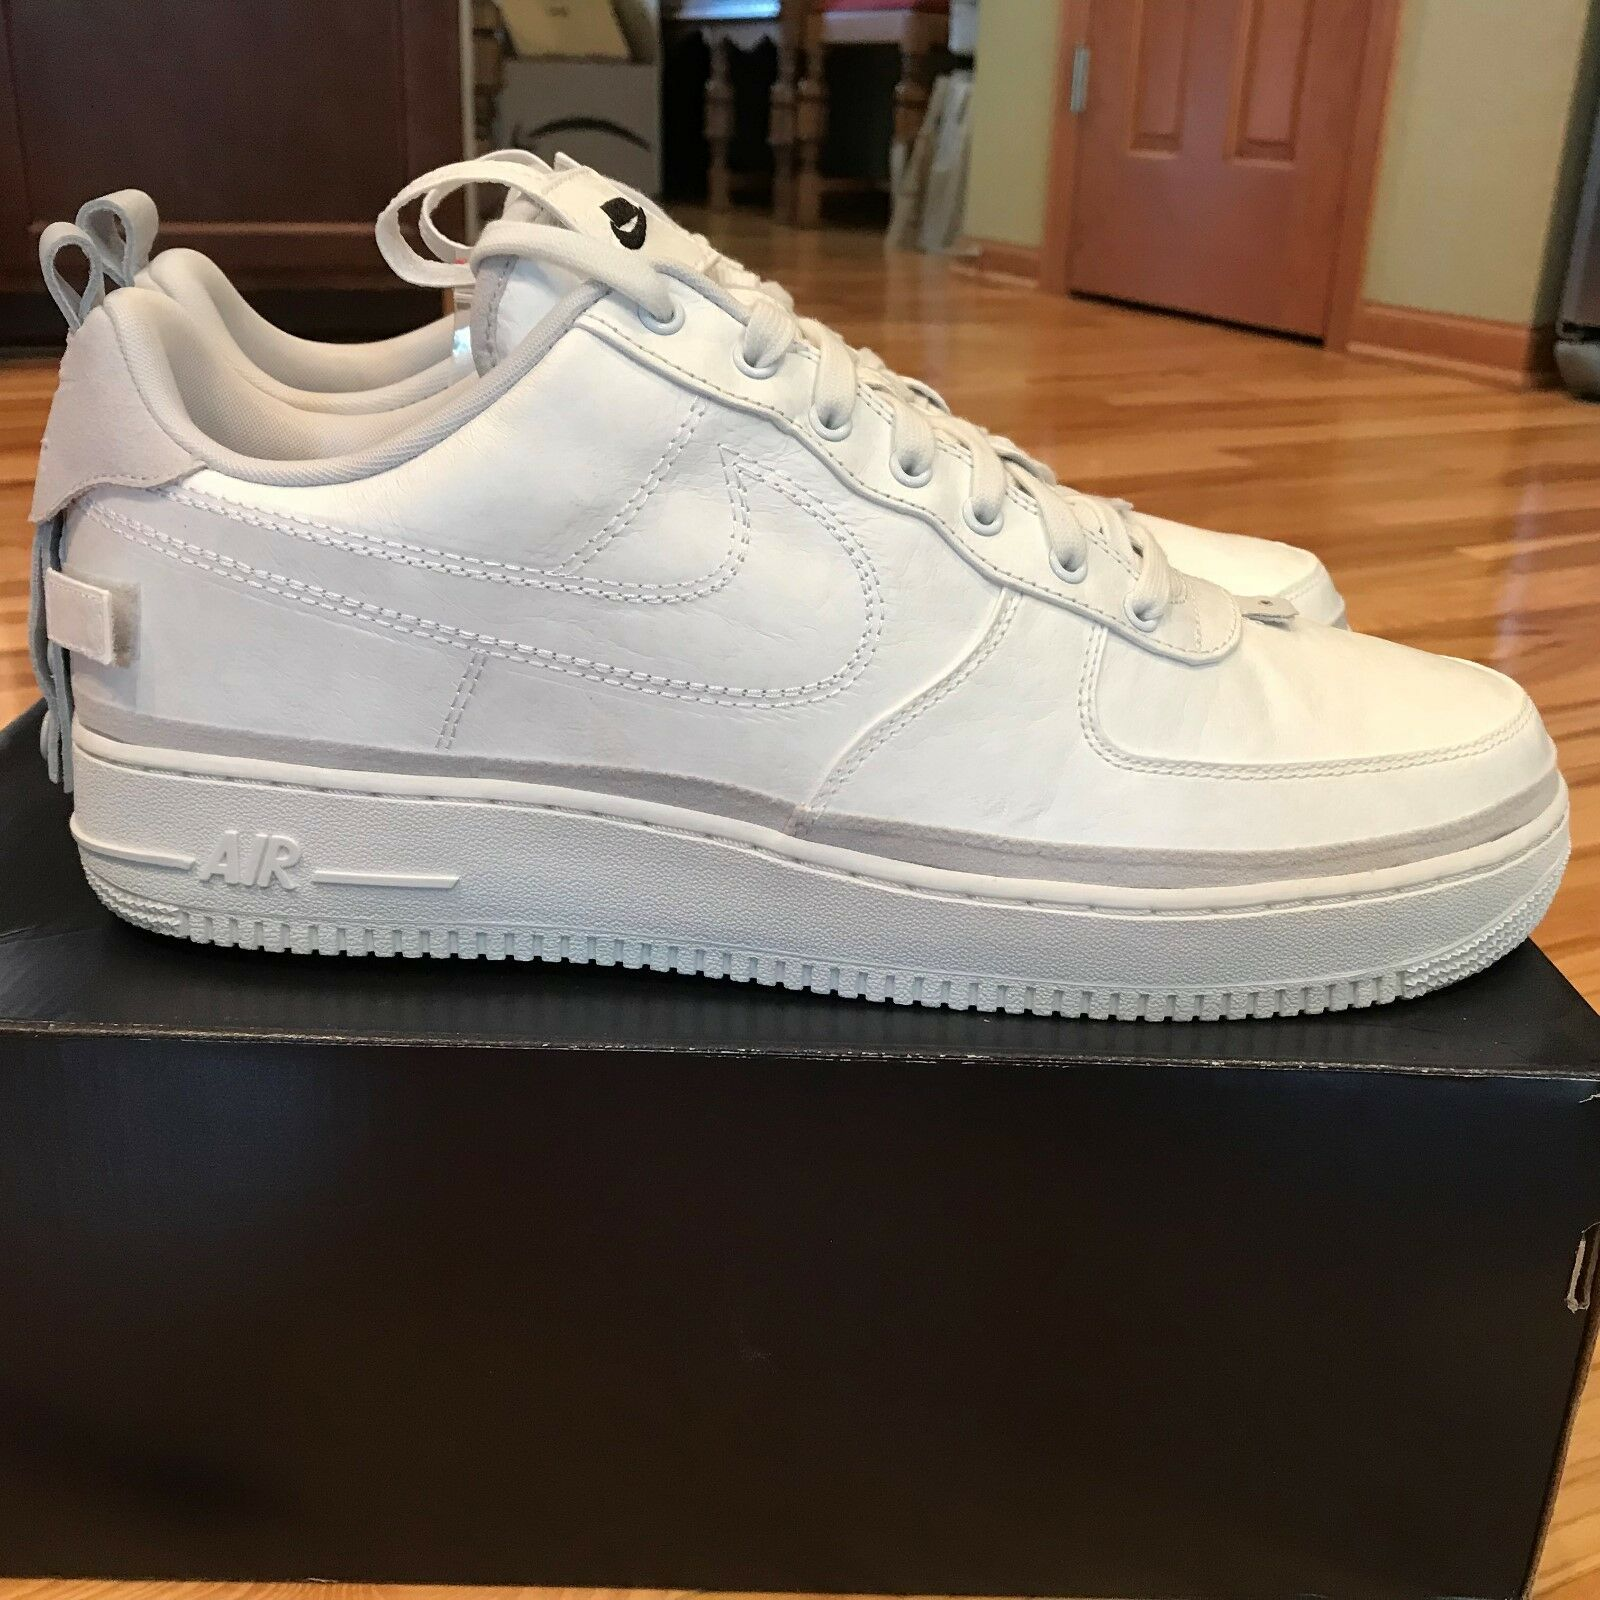 NIKE AIR FORCE 1 '07 AS QS LOW ALL STAR 90 10 VAST GREY WHITE AH6767-001 SIZE 14